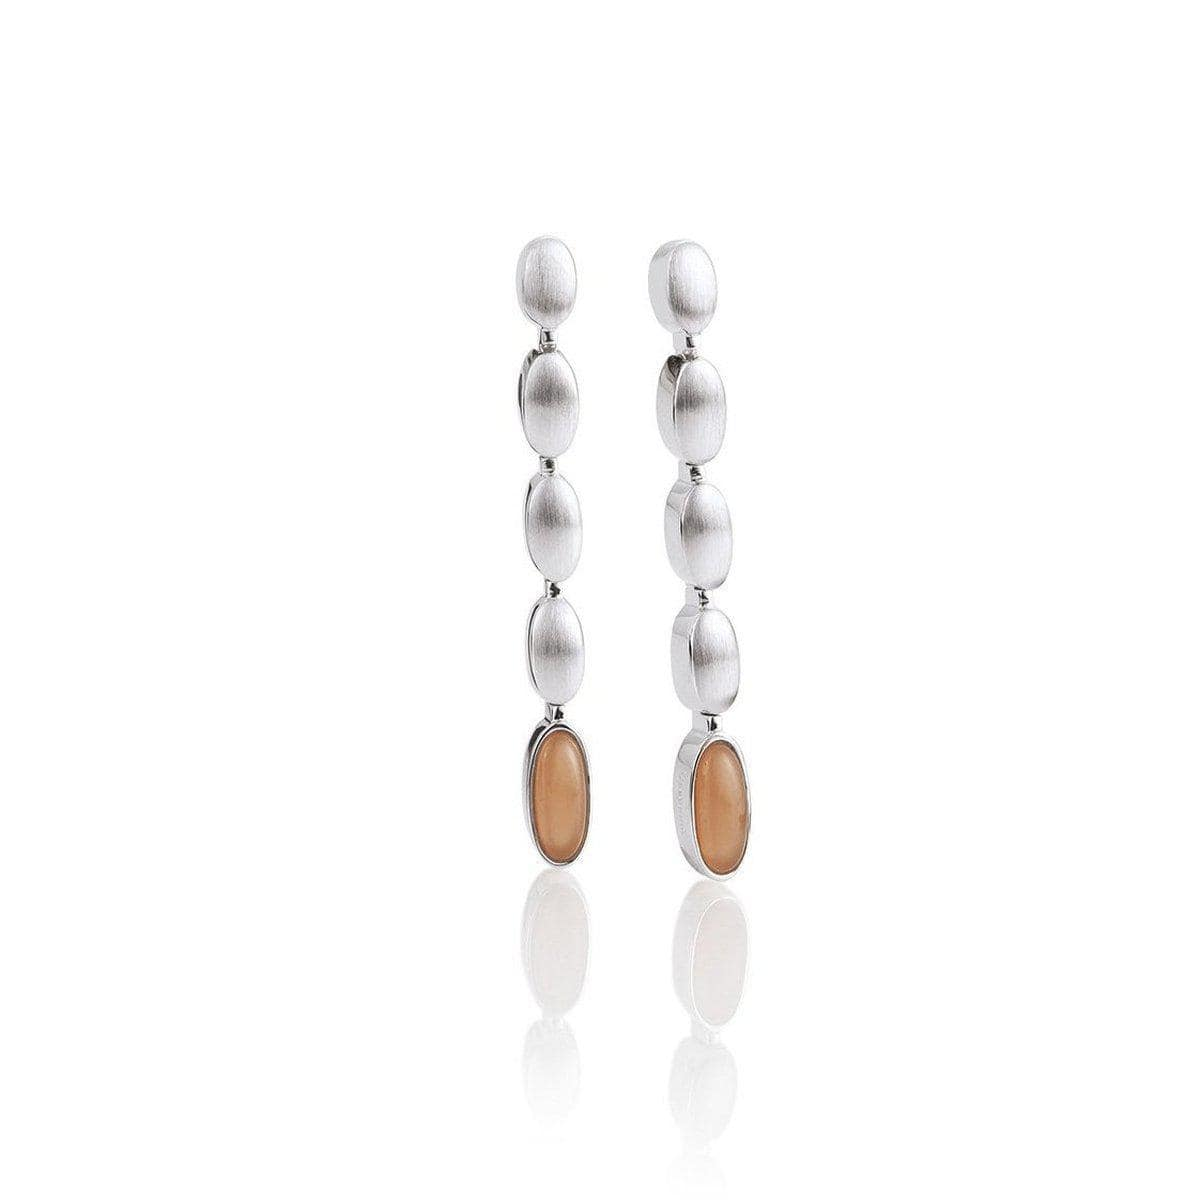 Sterling Silver Moonstone Honey Moon Earrings - 12/02018-Breuning-Renee Taylor Gallery